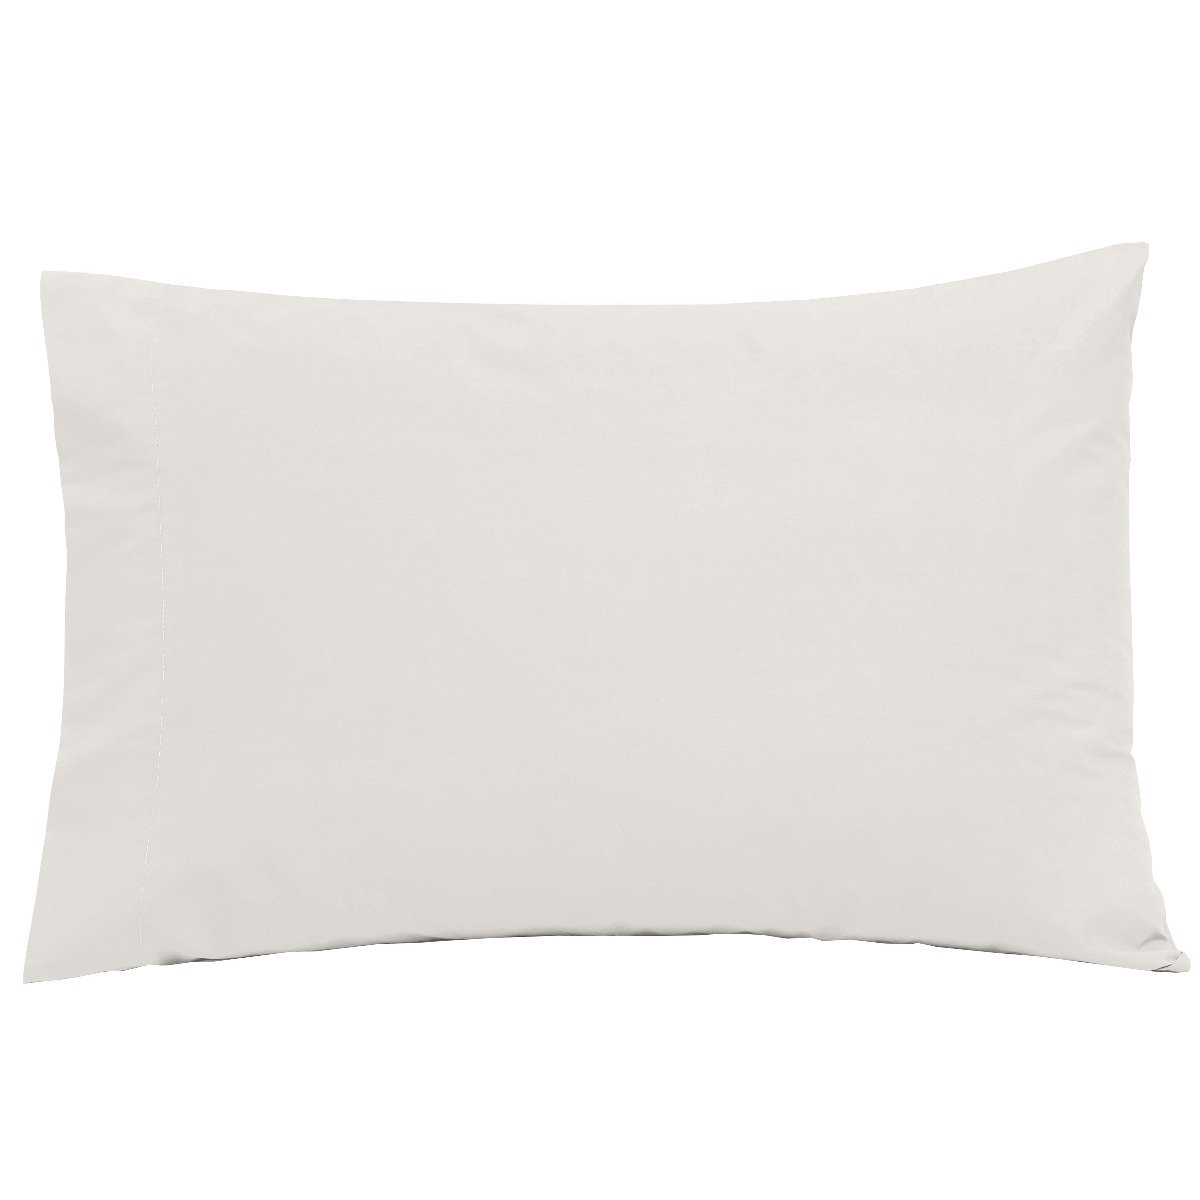 Pillowcase - Standard - White